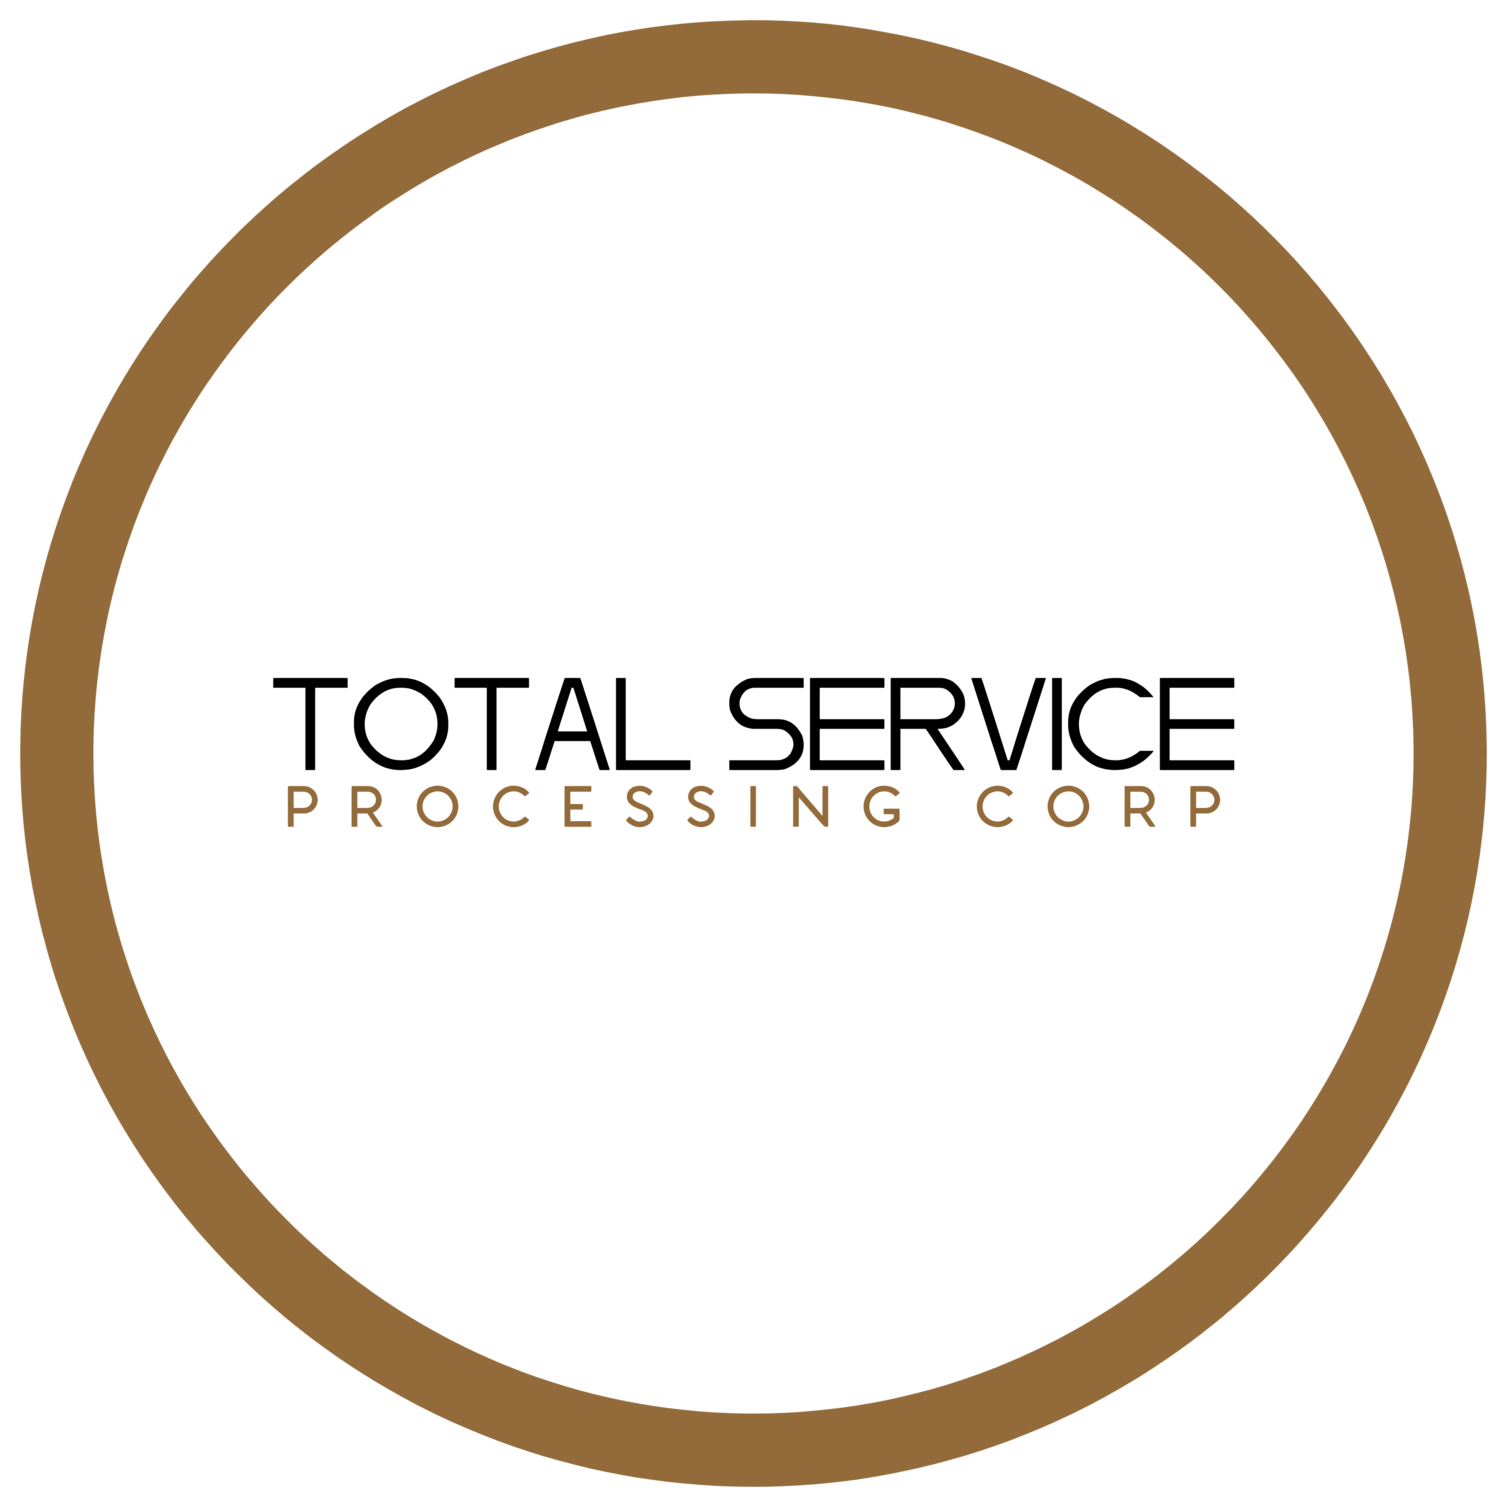 TOTAL SERVICE PROCESSING CORP.